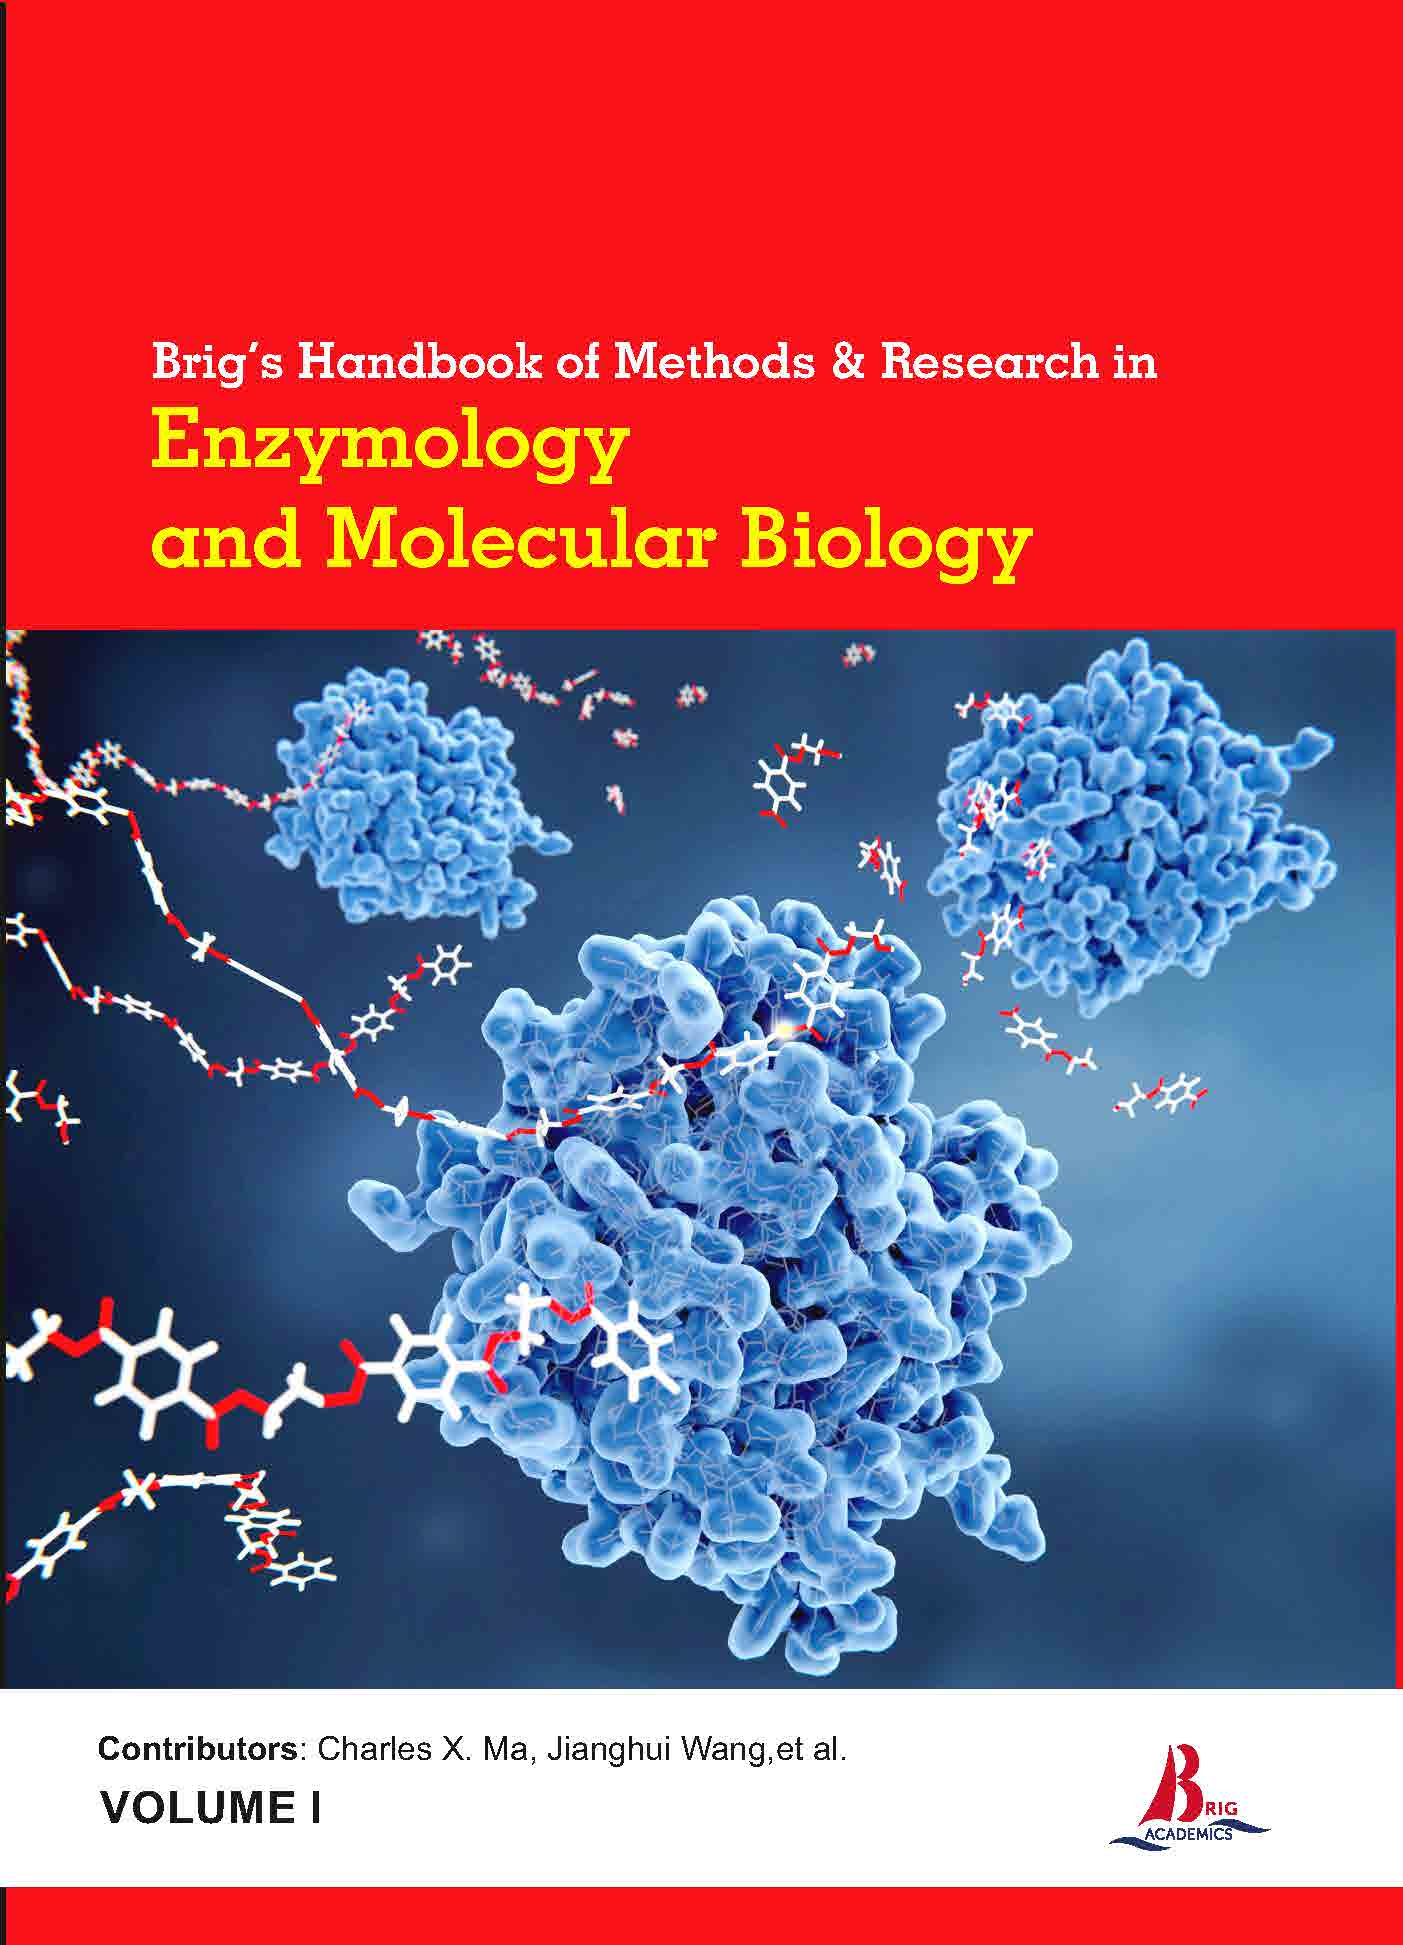 Brig's Handbook of Methods & Research in Enzymology and Molecular Biology